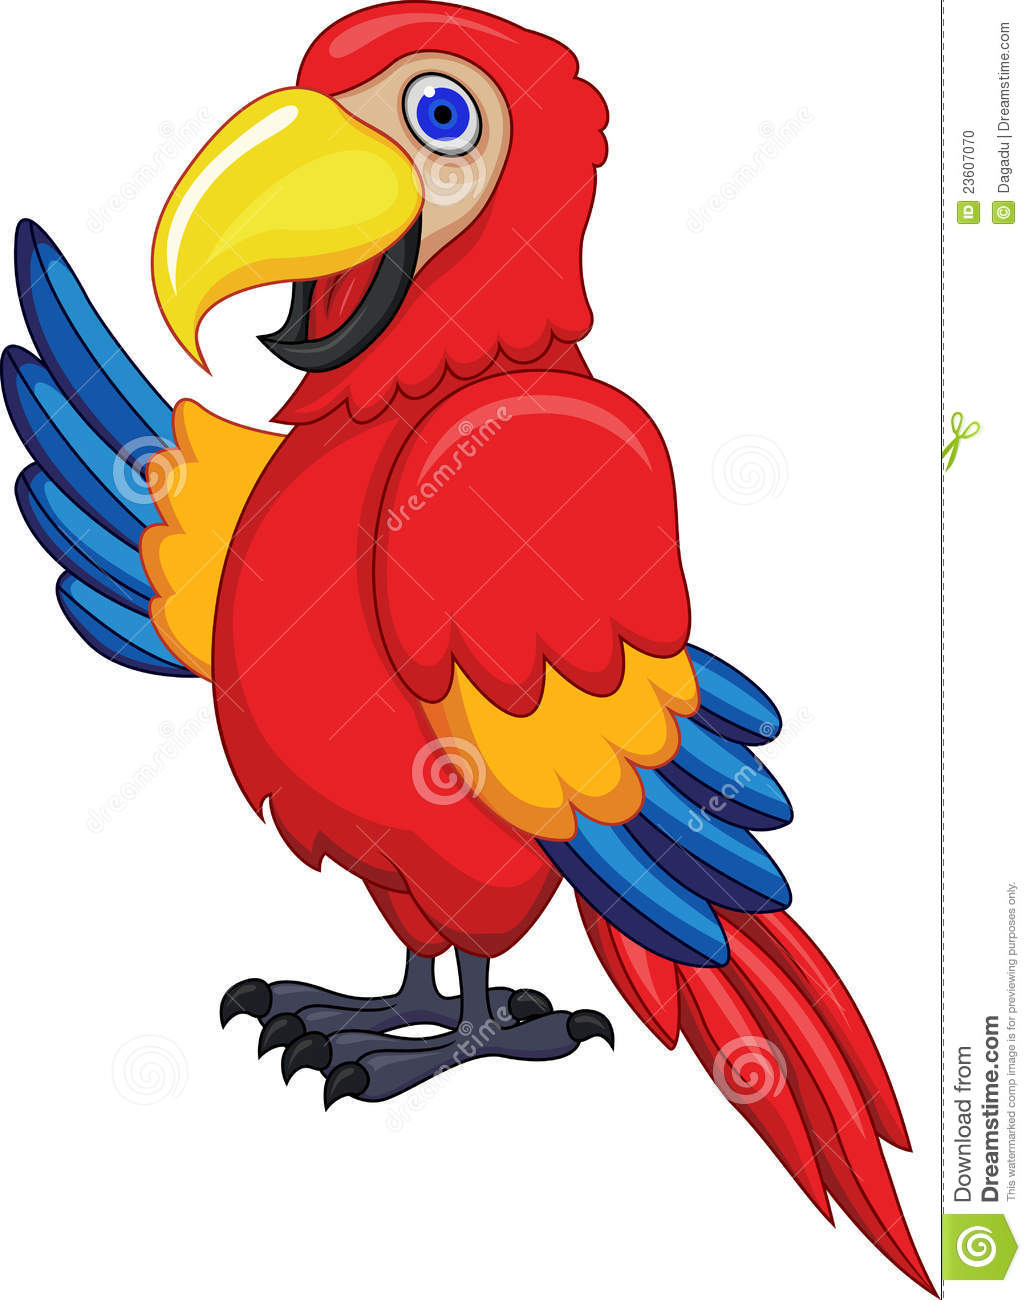 Scarlet Macaw clipart animated #5